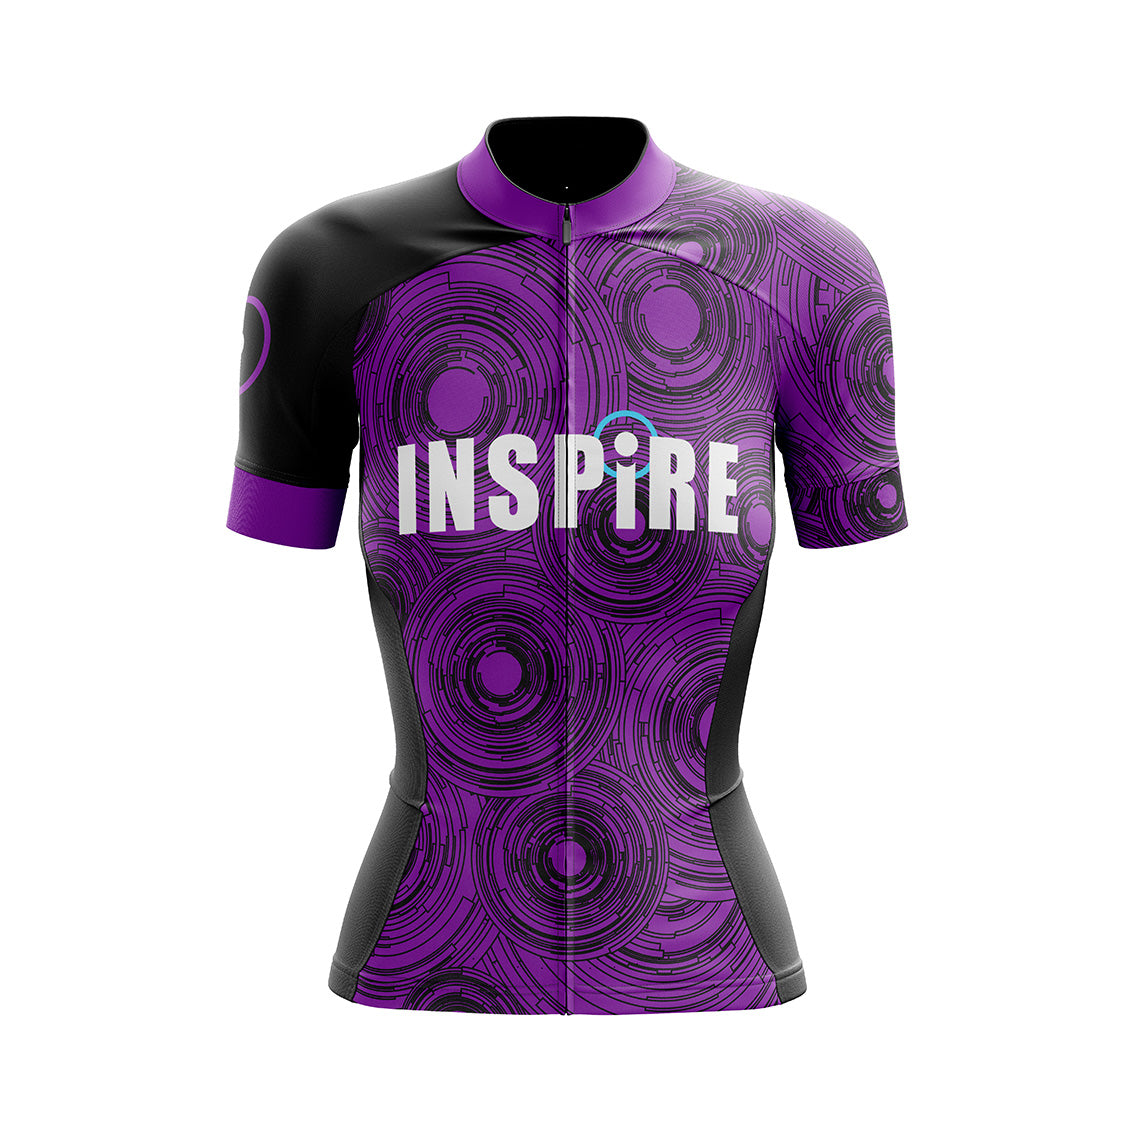 INSPiRE Ladies Cycling Shirt